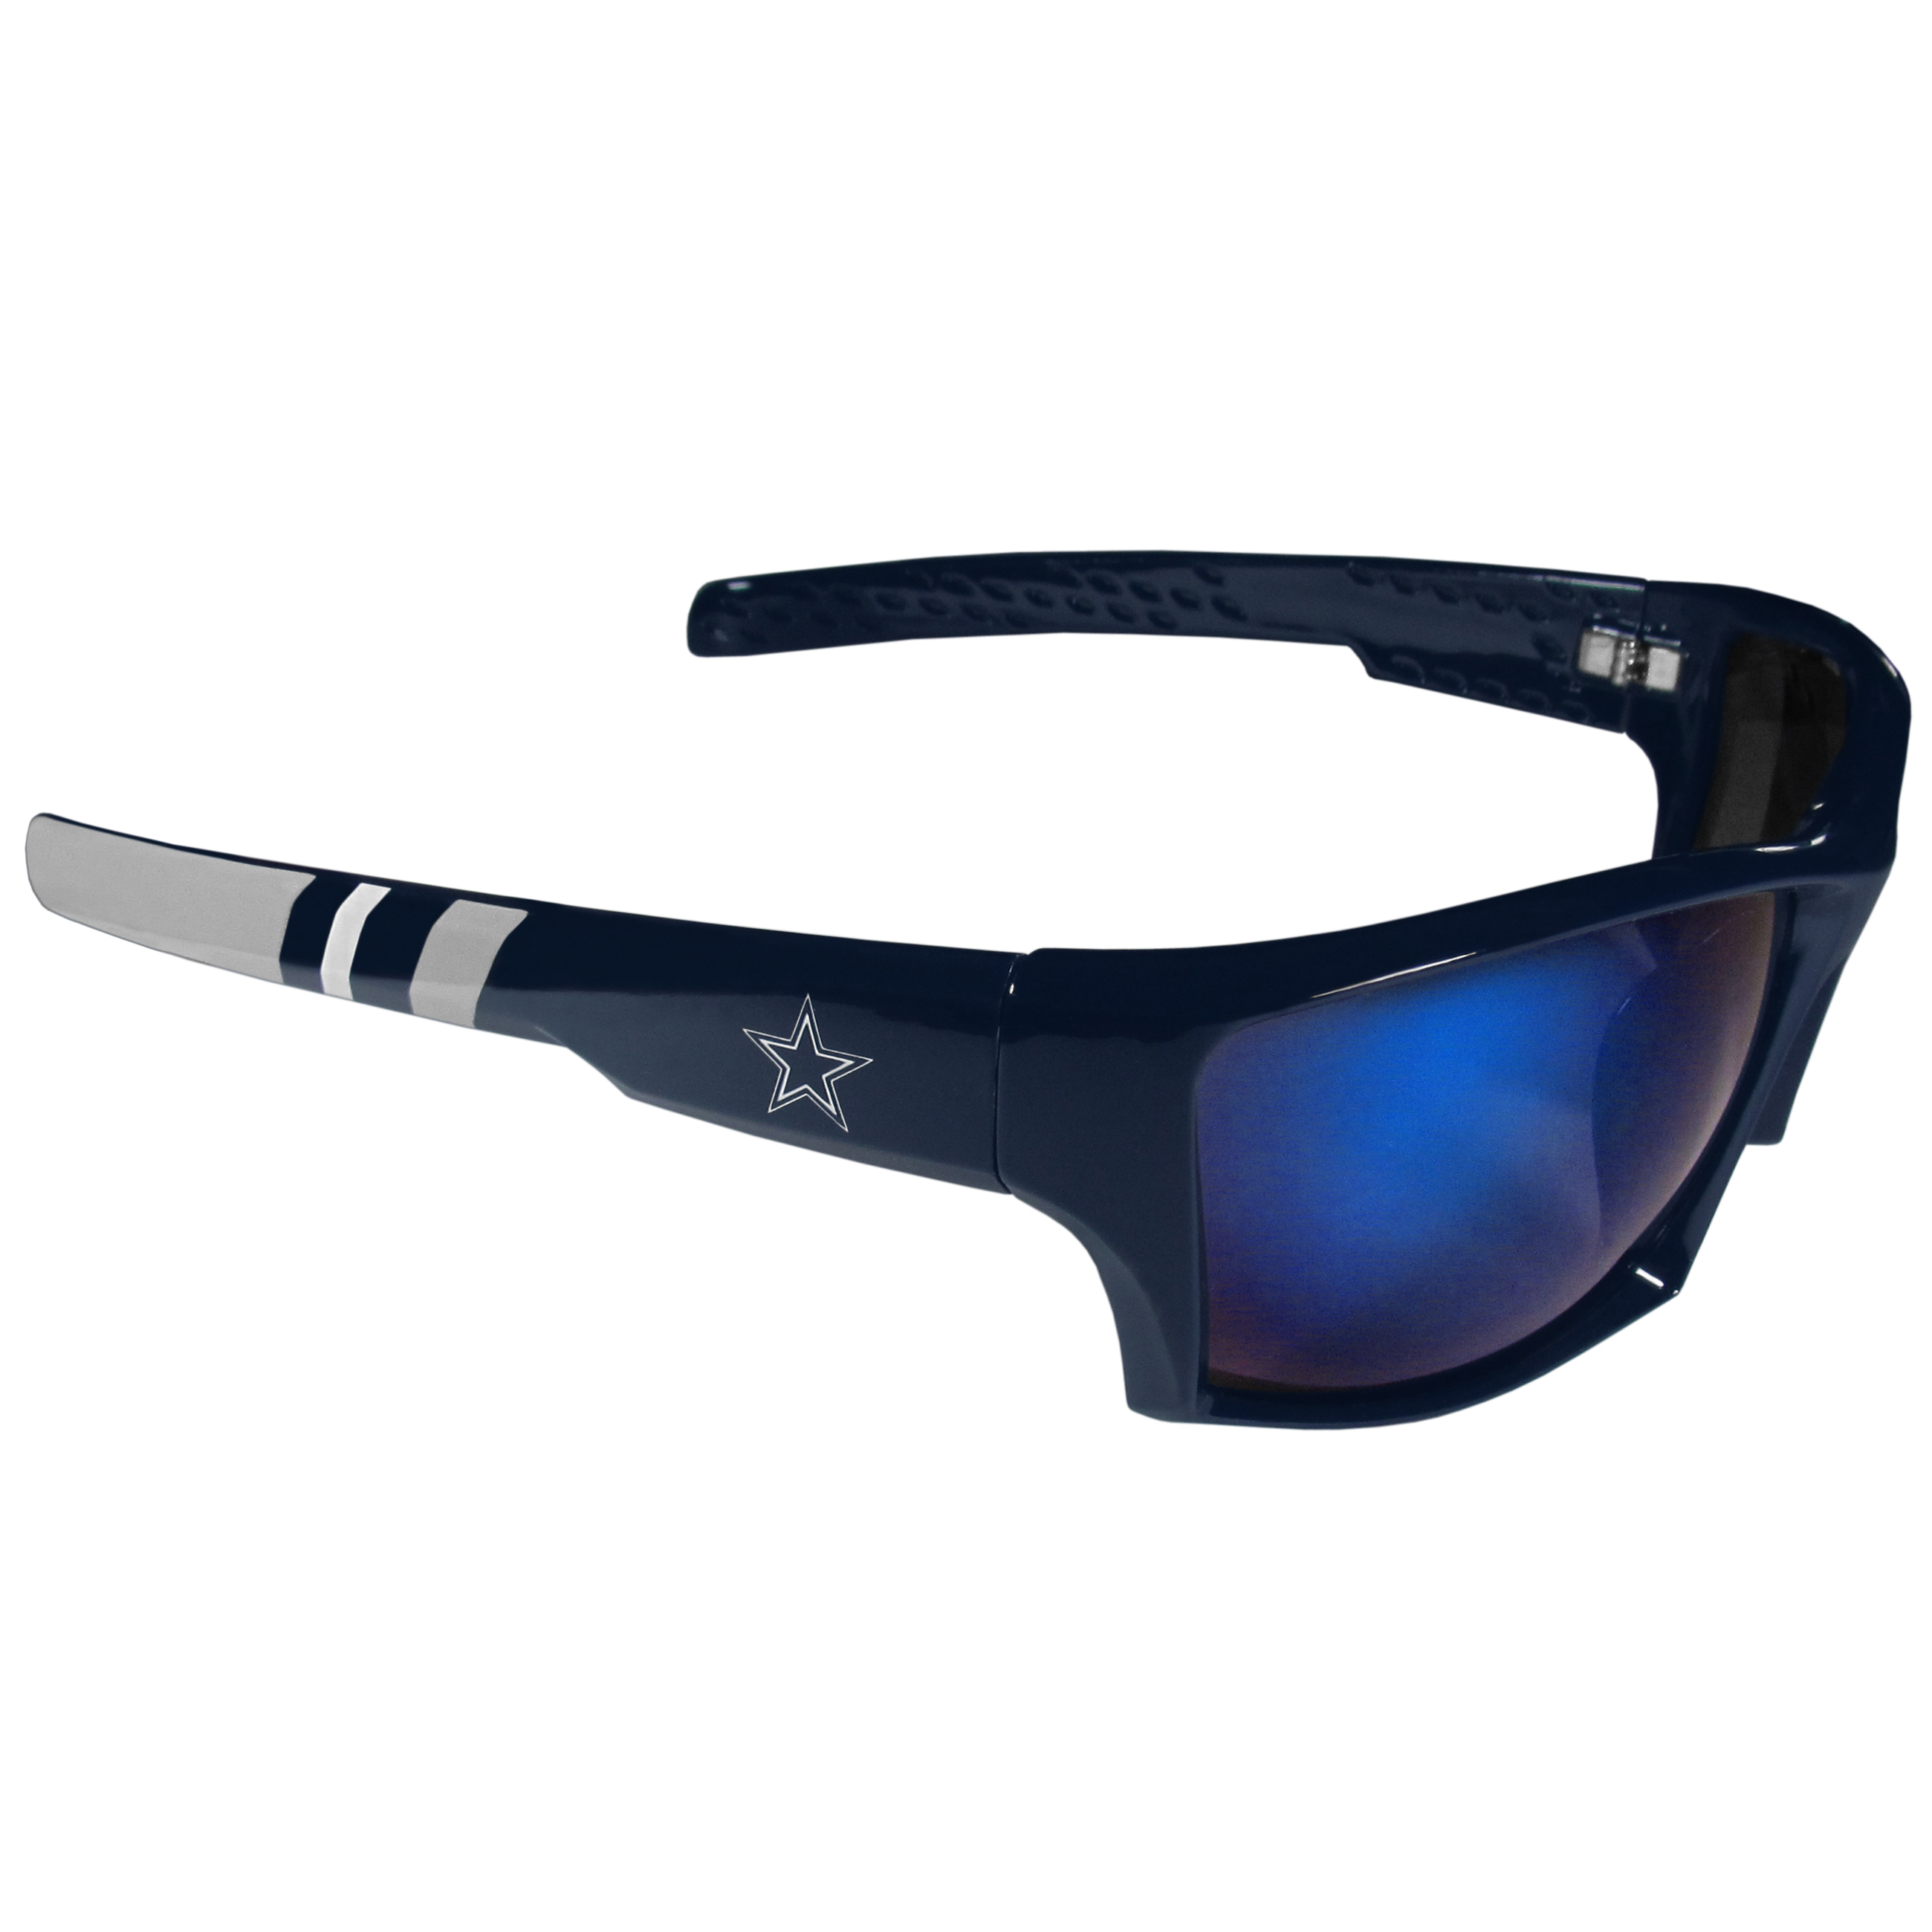 Dallas Cowboys Edge Wrap Sunglasses - Be an icon of edgy style while you're in the stadium cheering your Dallas Cowboys to victory with our polarized wrap sunglasses that feature 100% UVA/UVB rating for maximum UV protection. The light-weight frames are built to last with flex hinges for comfort and durability which make them perfect for driving or just lounging by the pool. The colorful rubber grips on the arms of these fashionable sunglasses make them perfect for someone with an active lifestyle. Whether you are hiking, fishing, boating, running on the beach, golfing or playing your favorite sport these designer frames will set you apart. Our edge wrap sunglasses are true quality eyewear at an affordable price. The wrap style frames come with team colored stripes and team logos so you can show off your die-hard team pride while protecting your eyes from those bright sun rays.